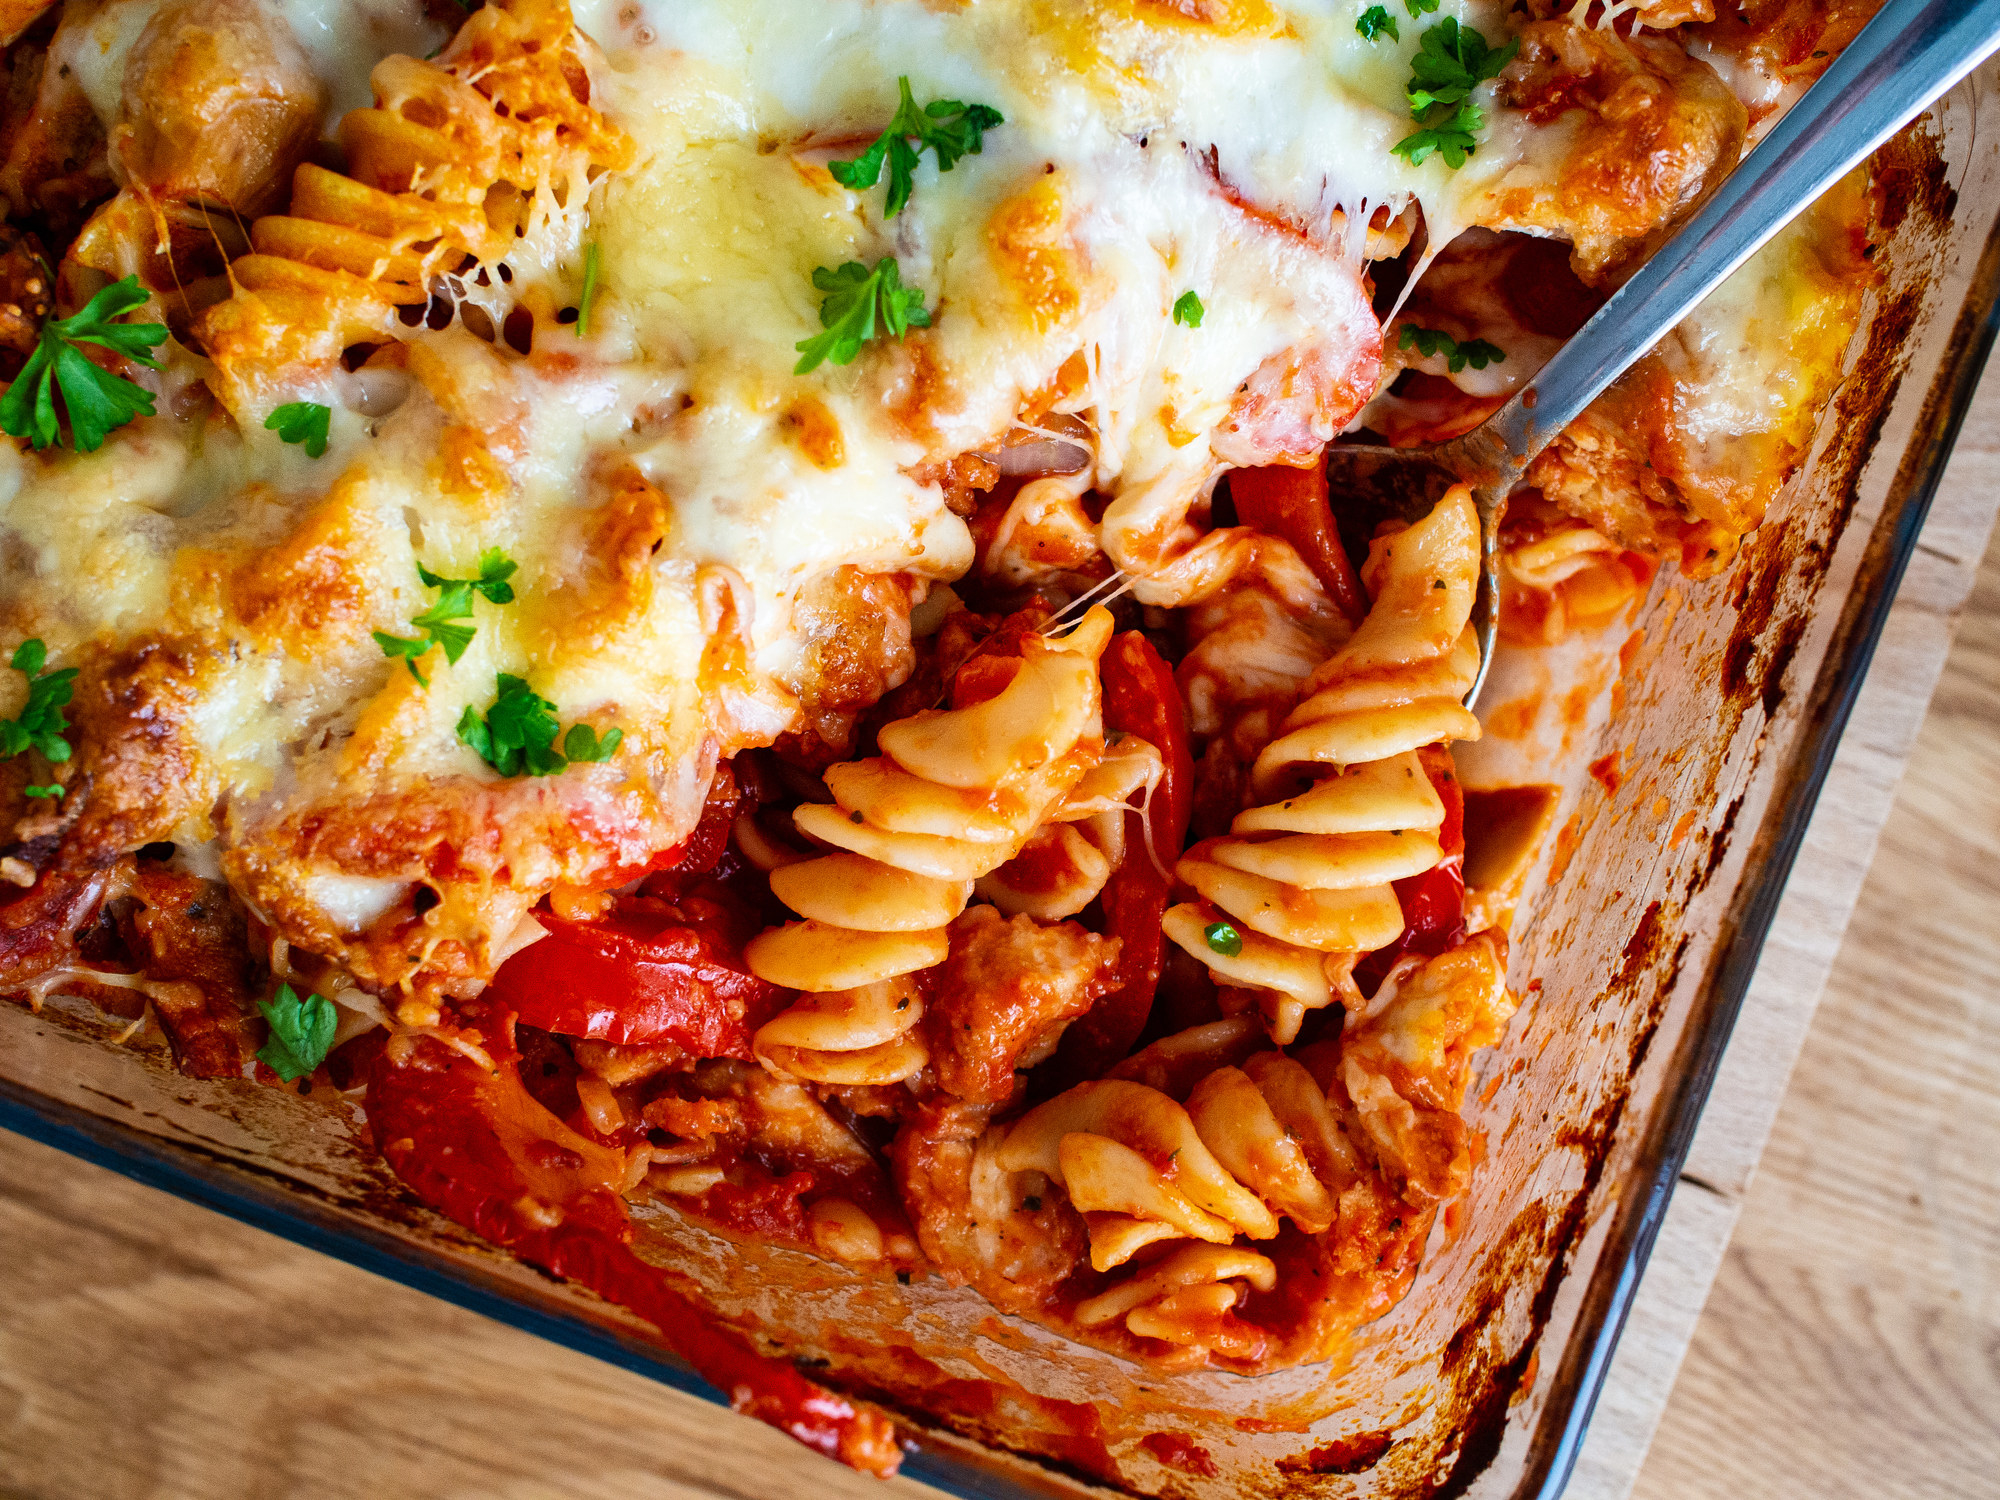 Cheesy baked pasta with herbs.